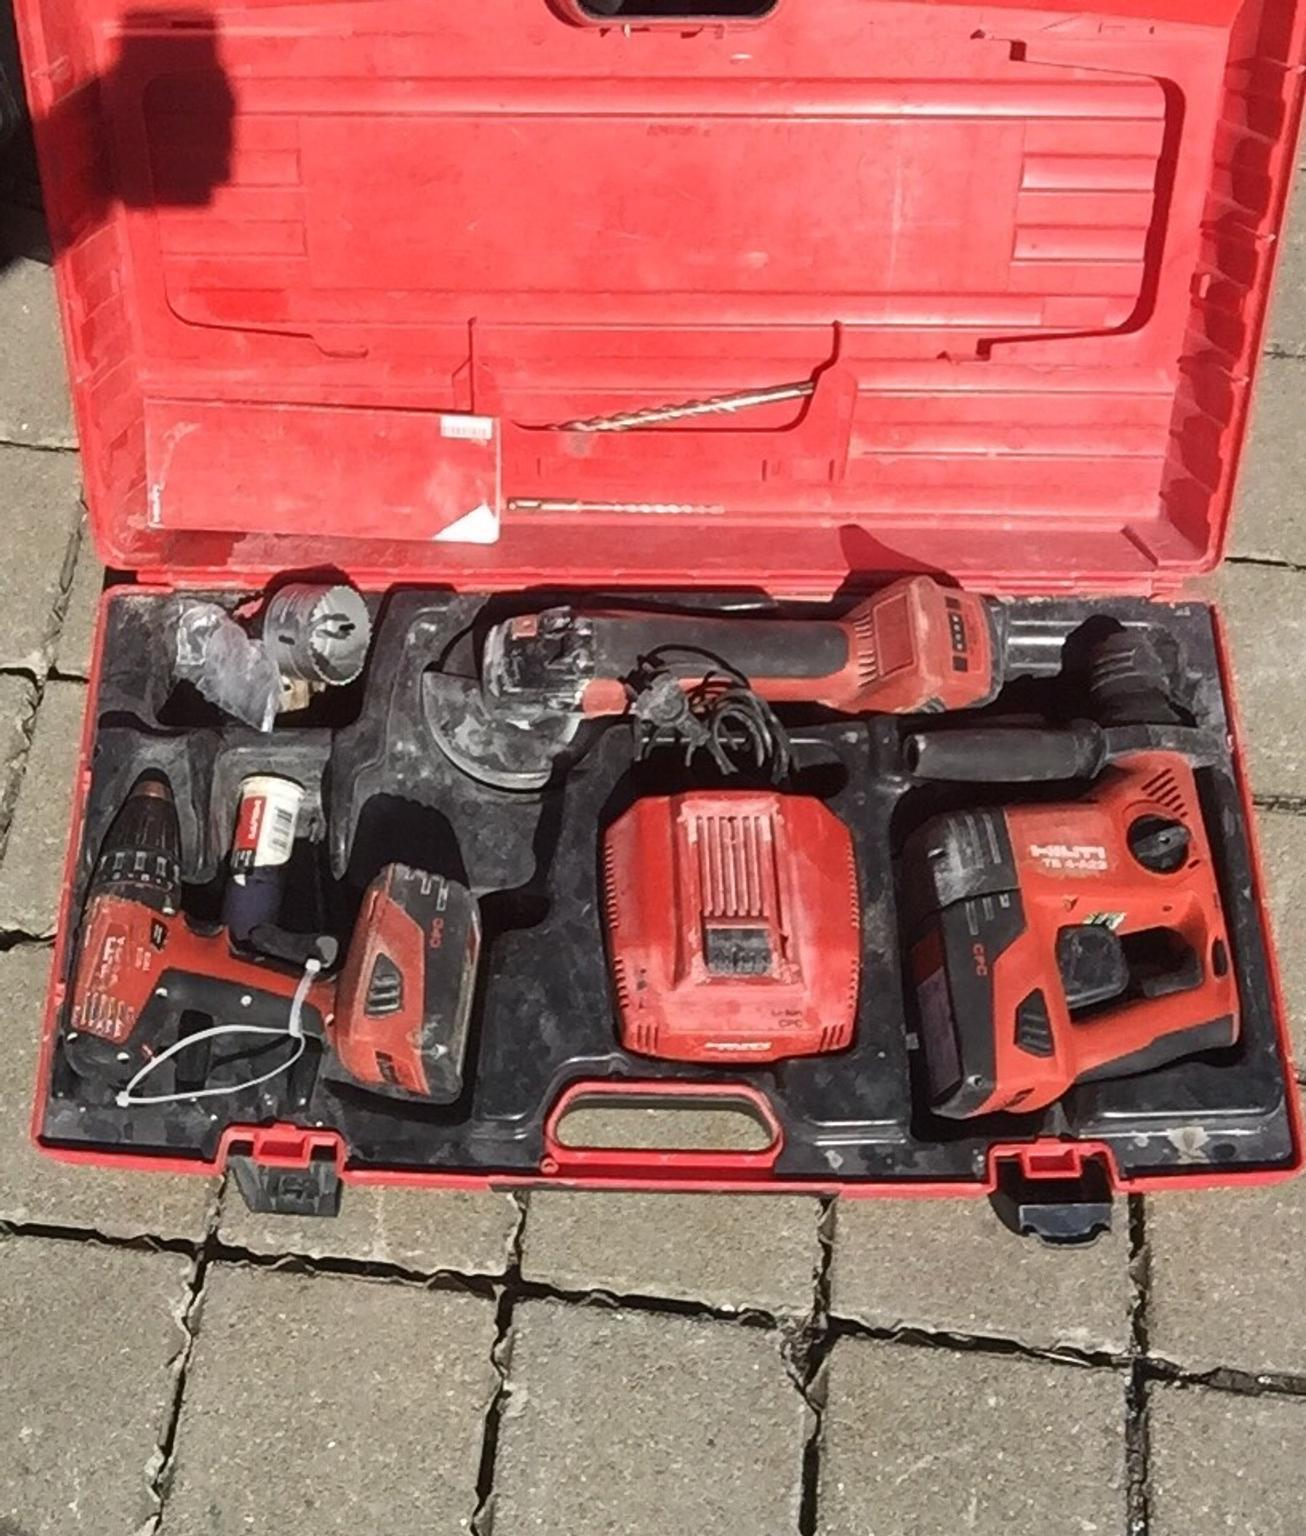 hilti 3 tool kit neuwertig in 6020 innsbruck for. Black Bedroom Furniture Sets. Home Design Ideas